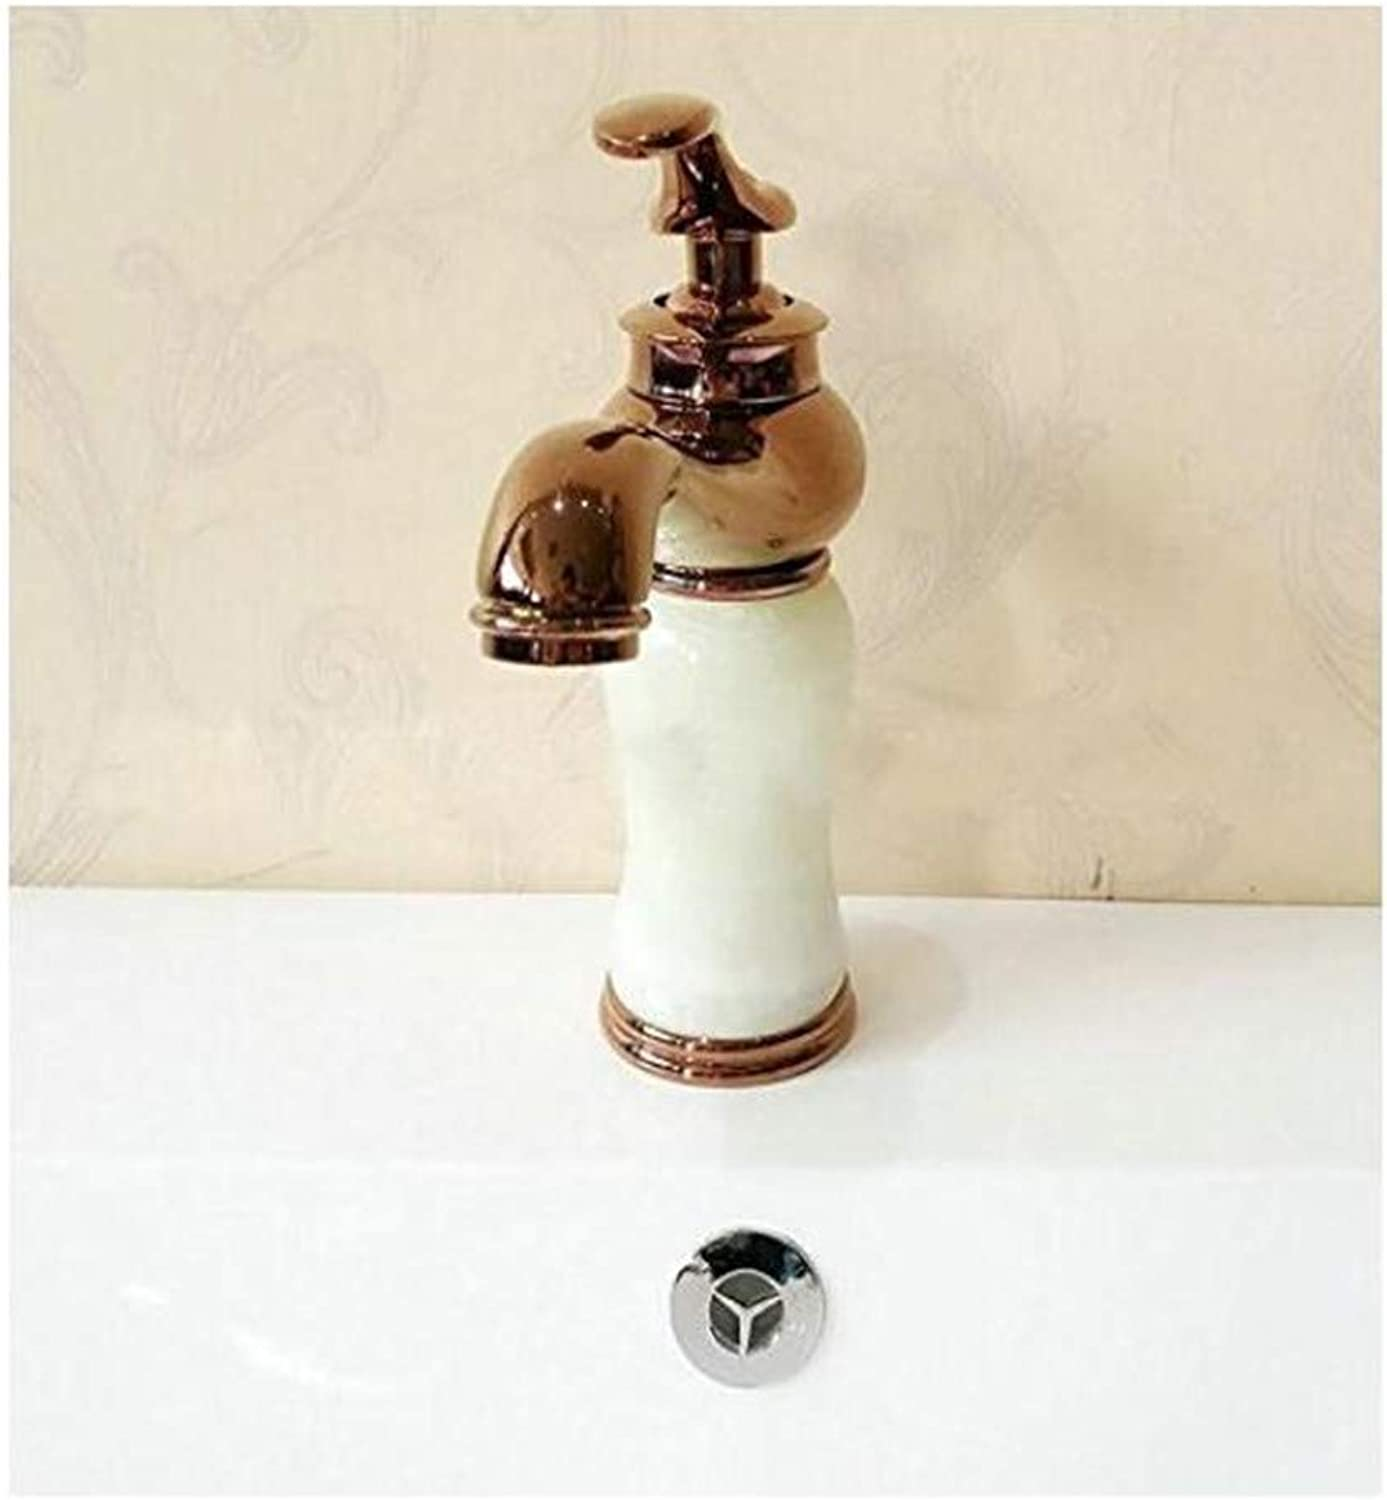 Faucet Luxury Modern Mixer Faucet Bathroom Wash Basin Faucet Senior Hot and Cold Water Single Hole Faucet Copper